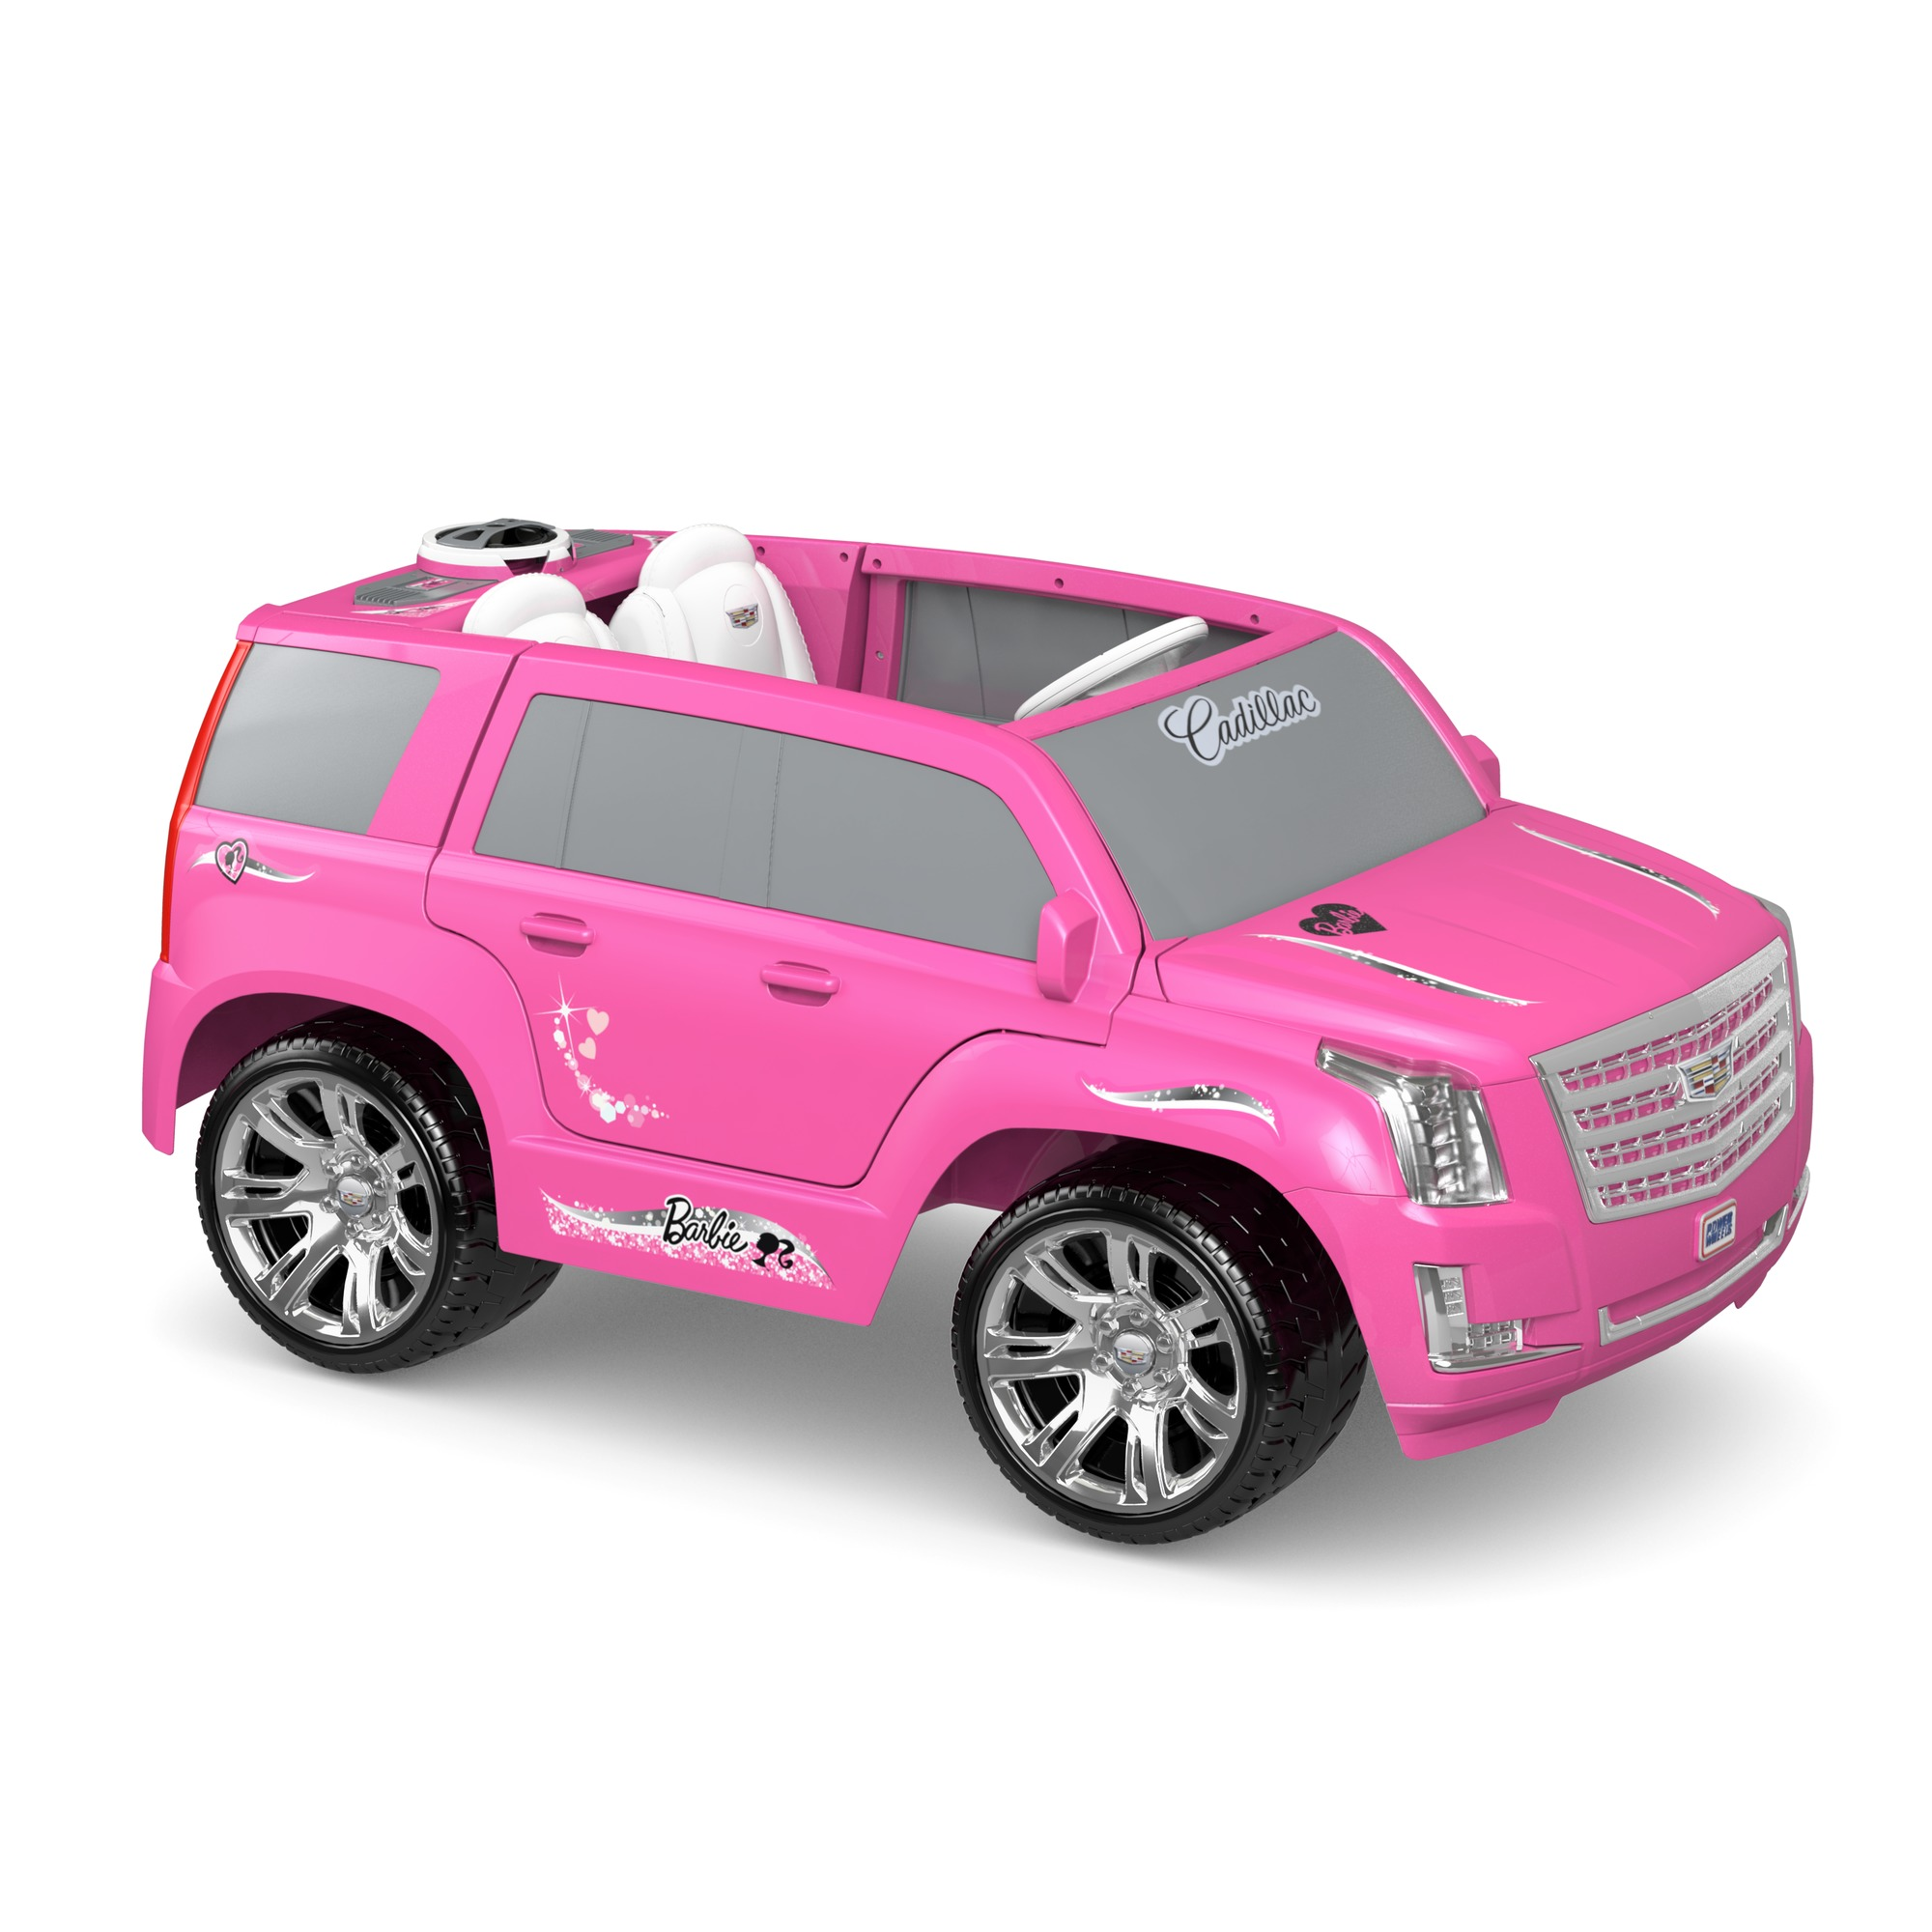 power wheels barbie cadillac escalade walmart com walmart com power wheels barbie cadillac escalade